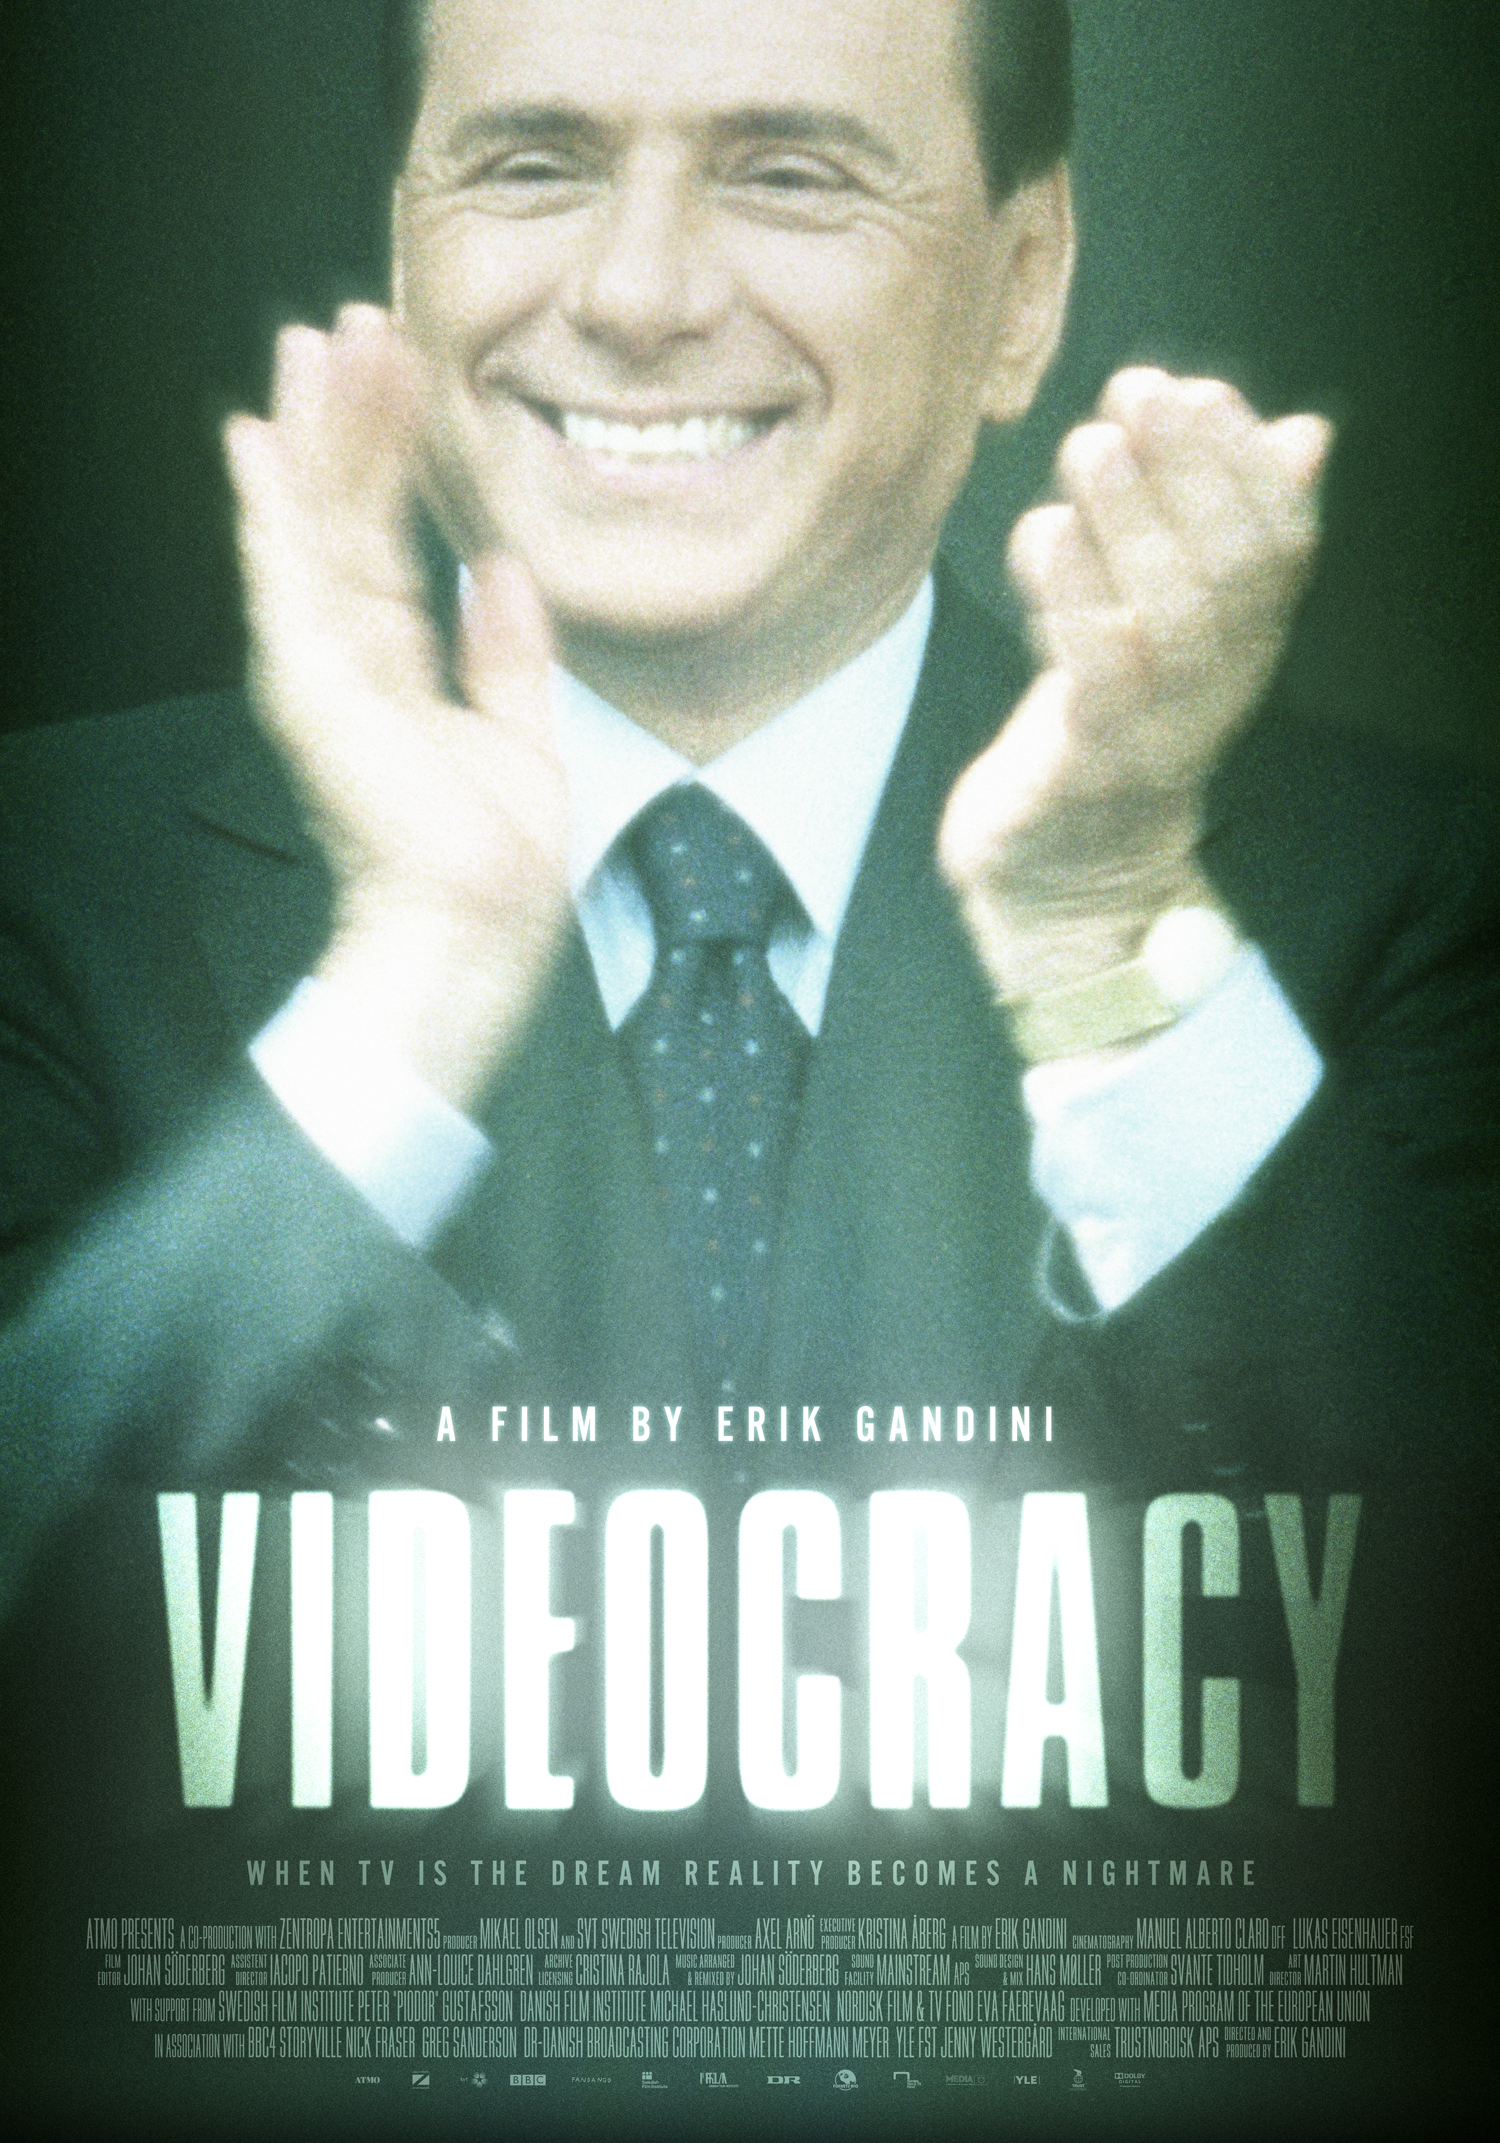 Videocracy, Official Poster, 70x100 cm